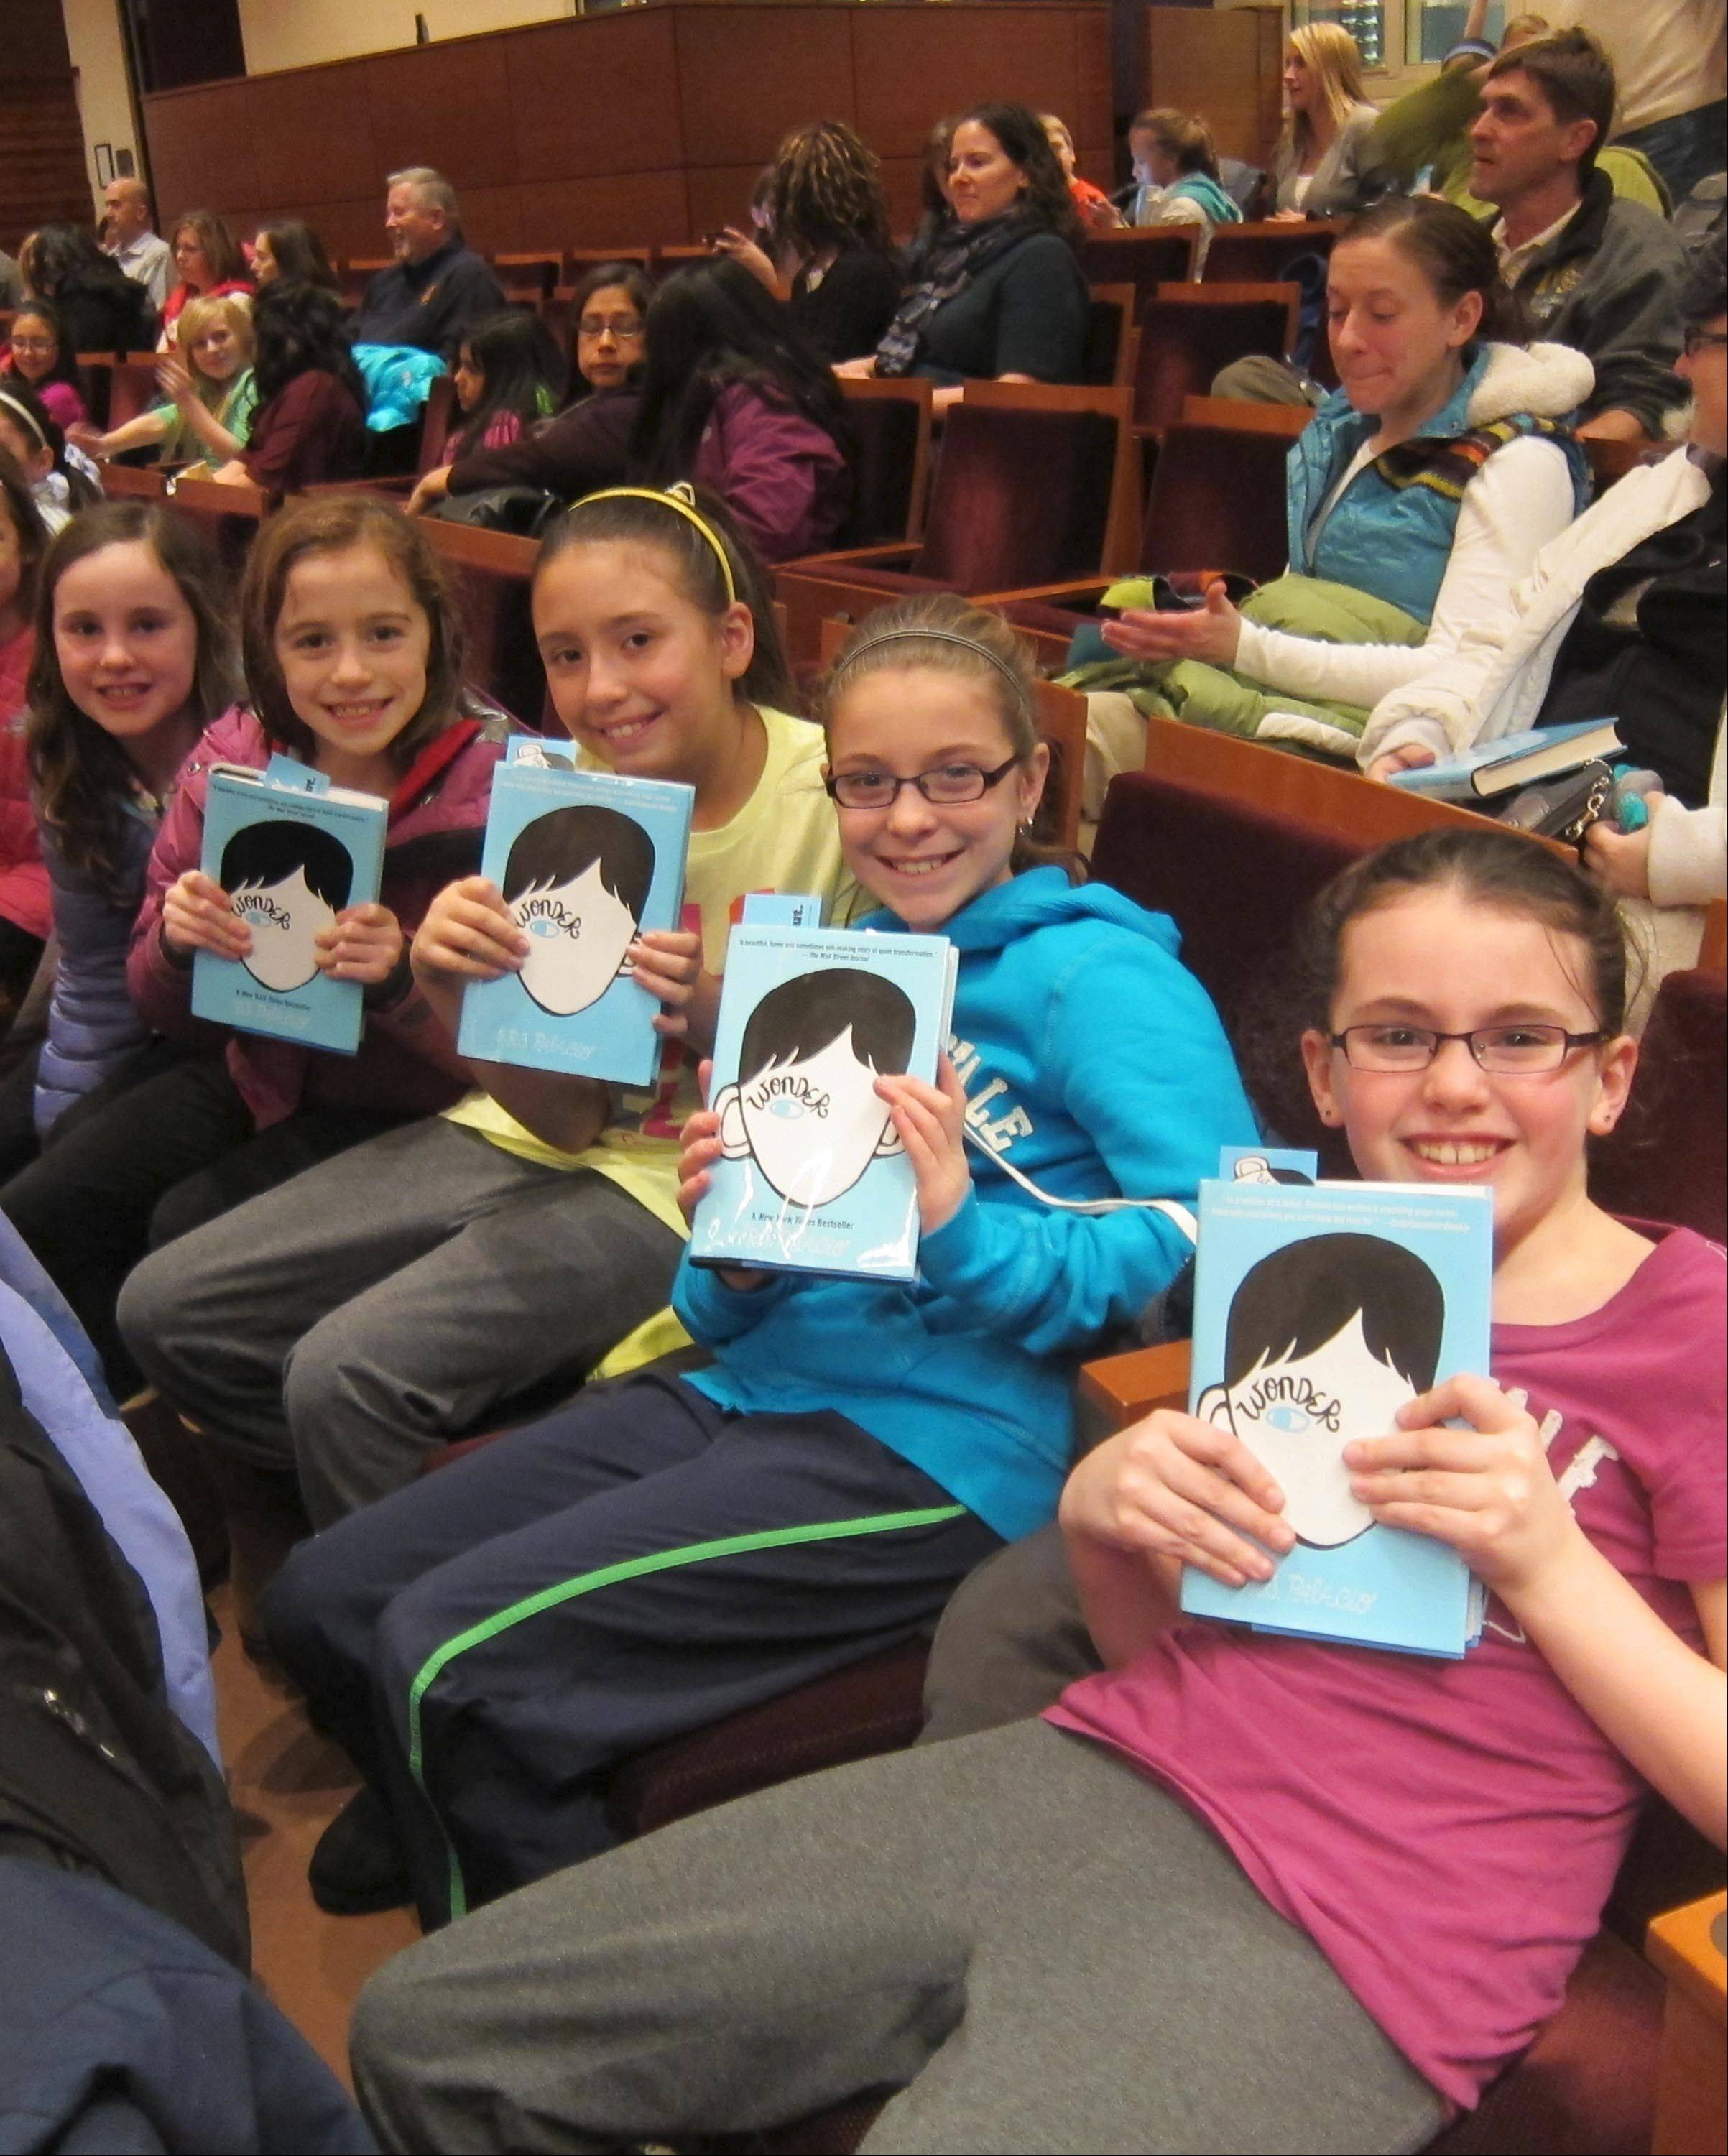 "Naperville students with copies of R.J. Palacio's book ""Wonder"" await an appearance by the author last year as part of the Naperville READS program. This year's program is bringing 12 authors -- the most ever featured in 13 years of Naperville READS -- to town for presentations in schools and for the public."